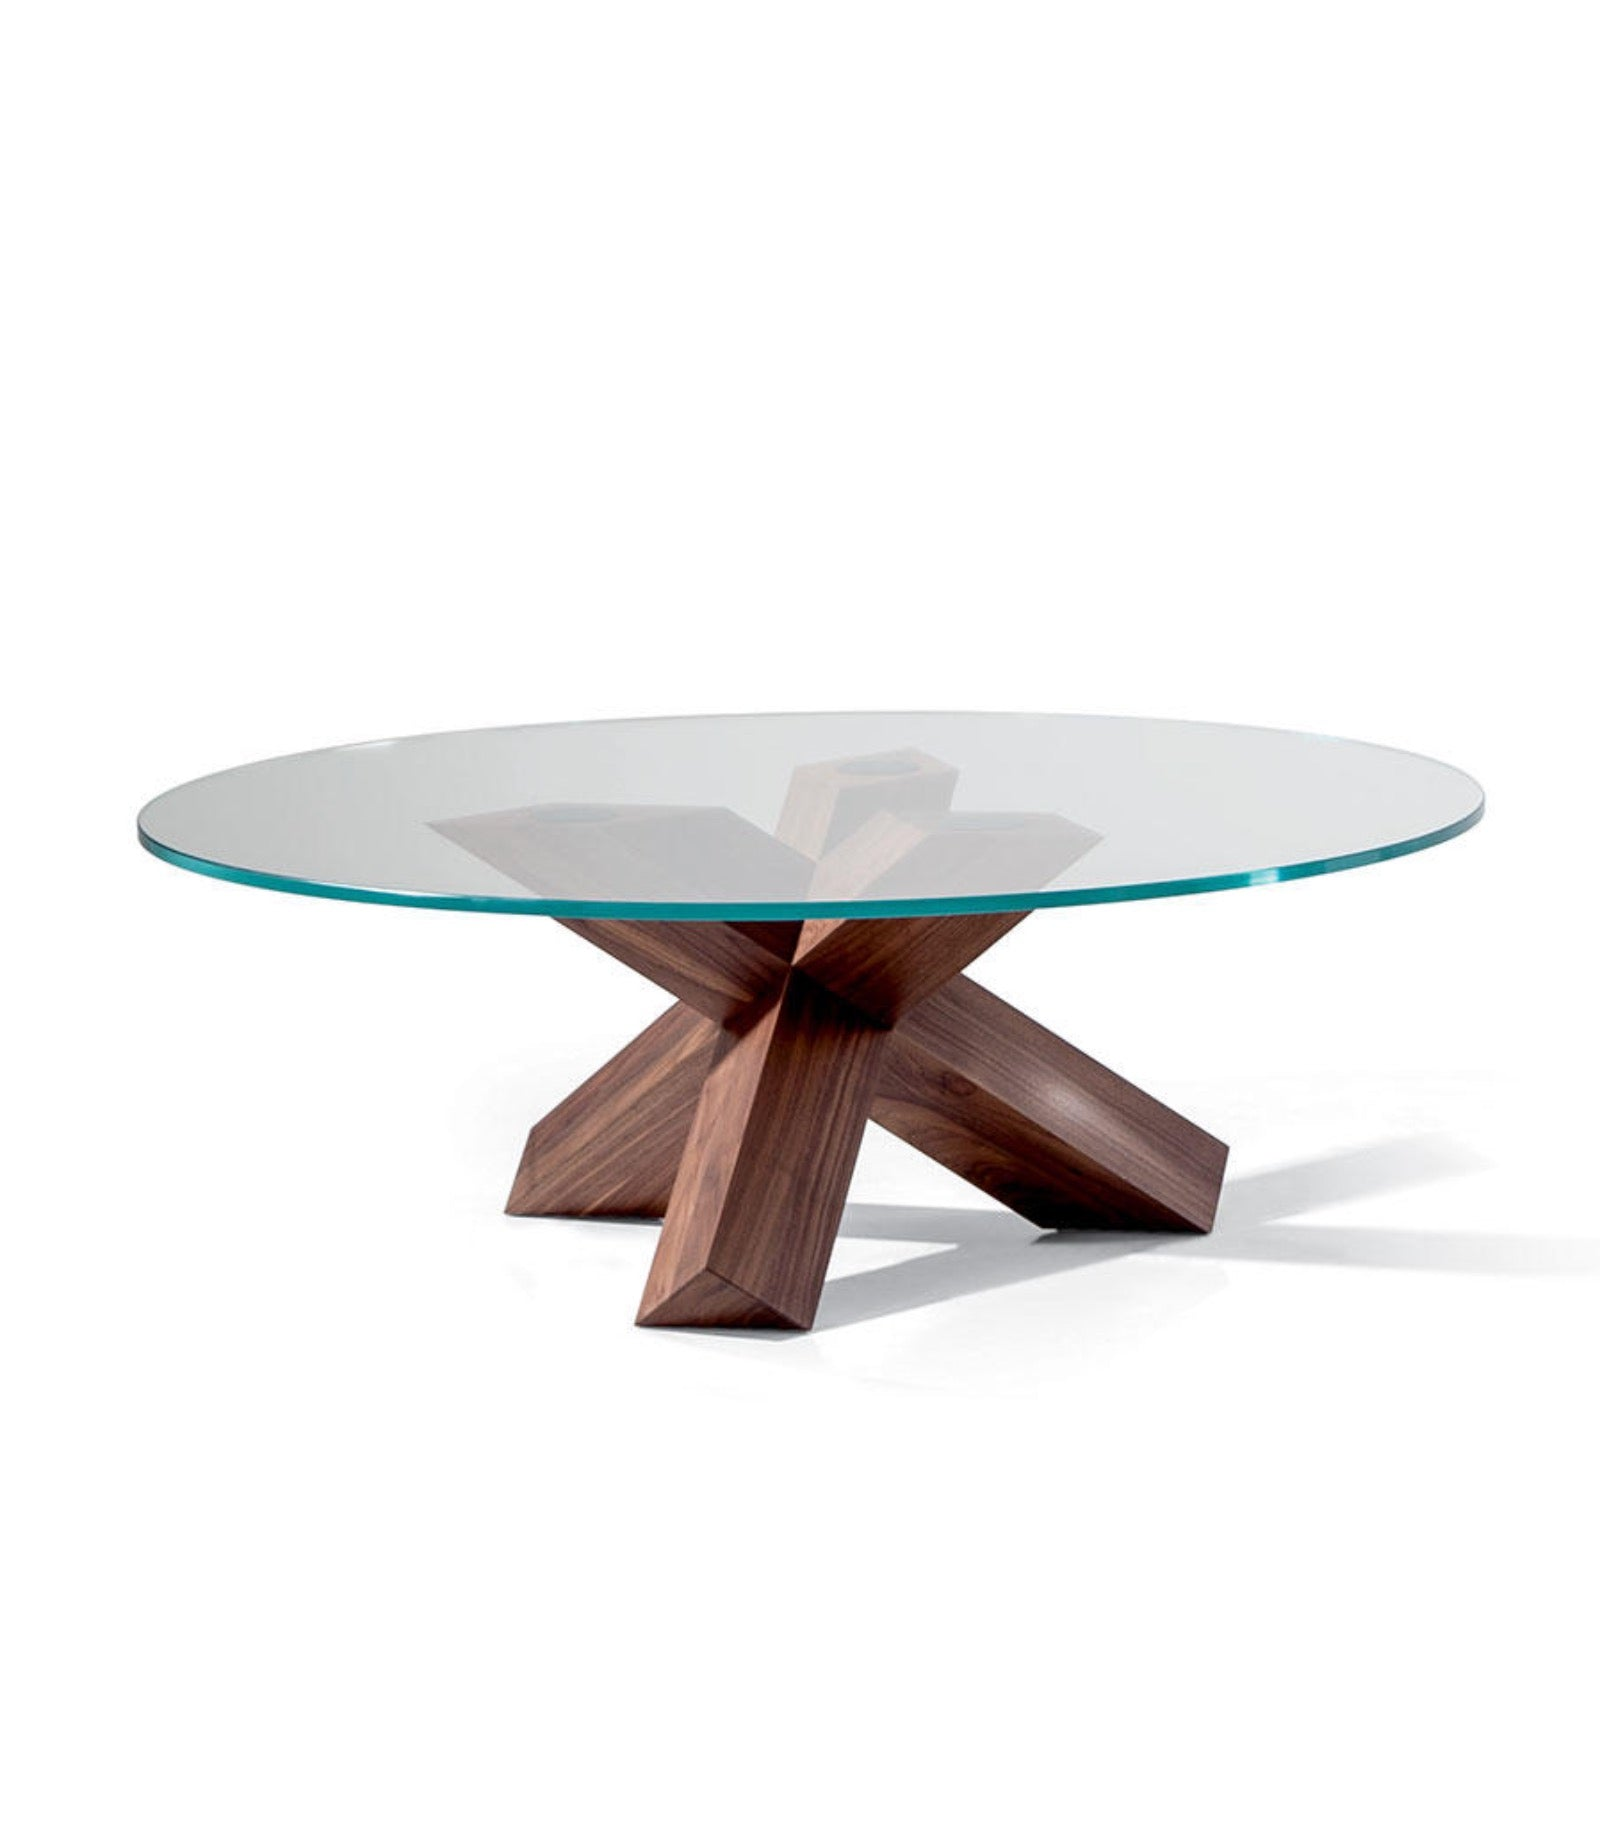 452 La Rotonda Coffee Table